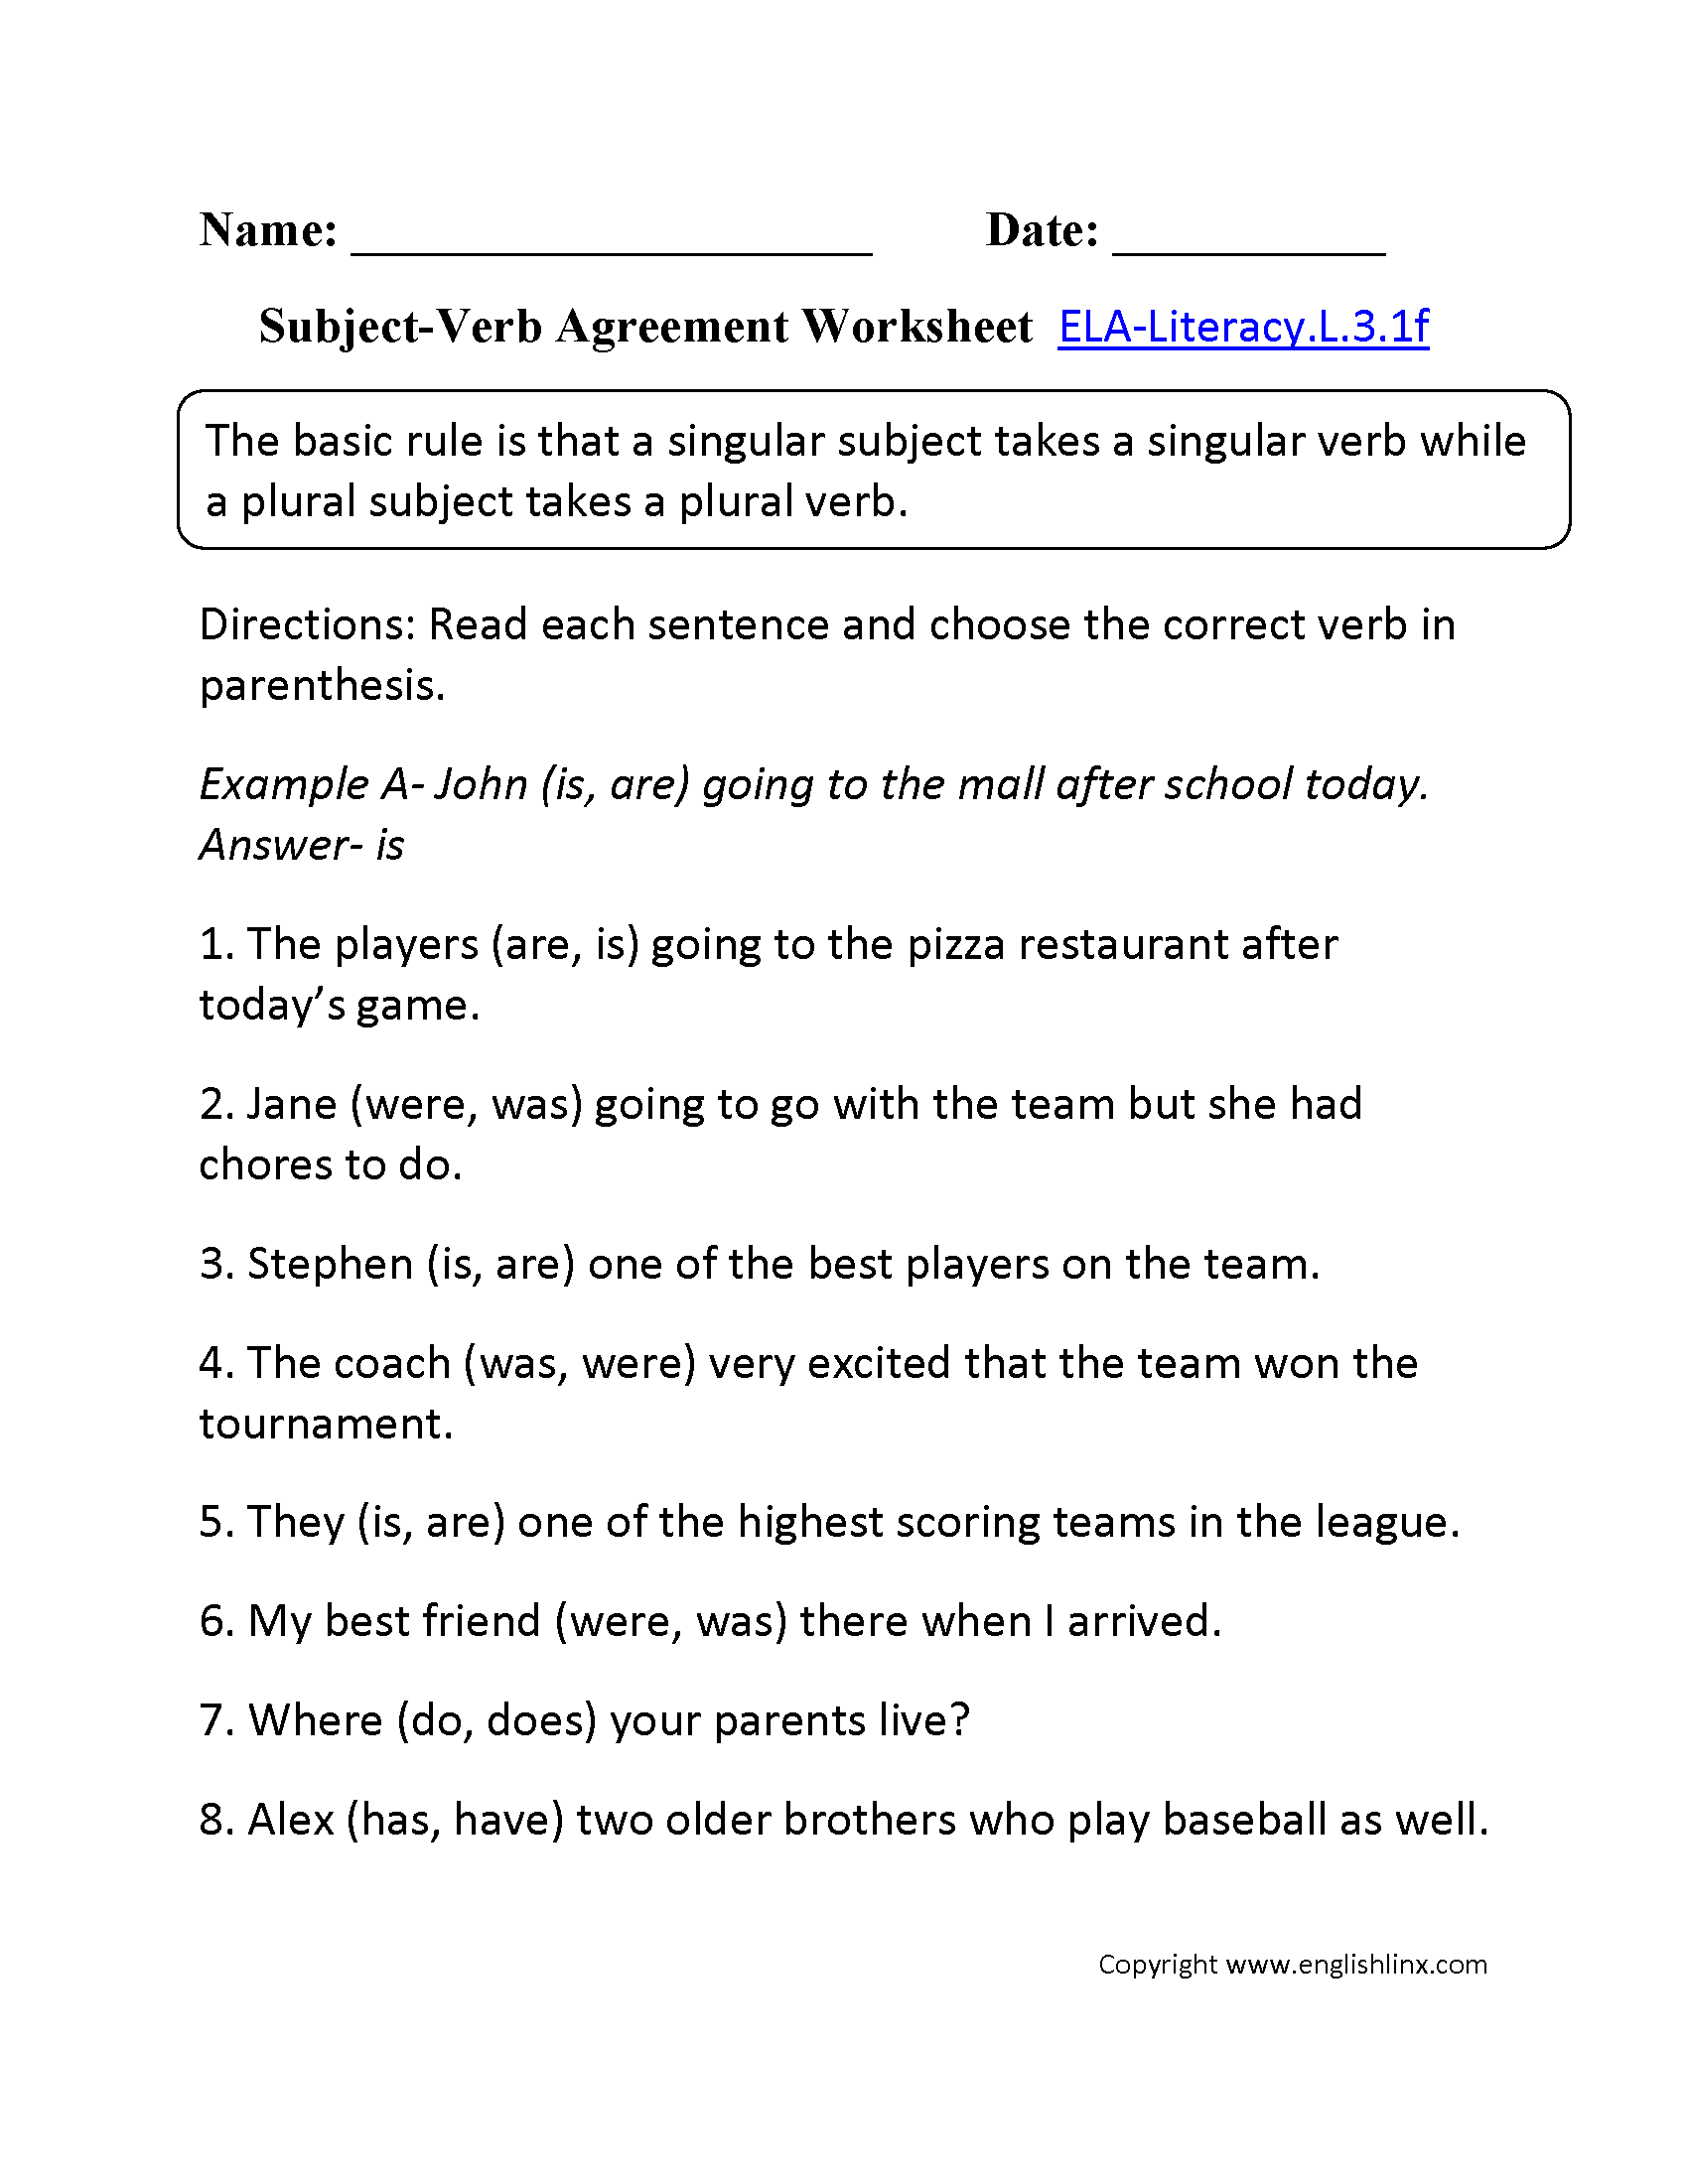 Subject Verb Agreement Worksheet 2 L31 L31 Pinterest